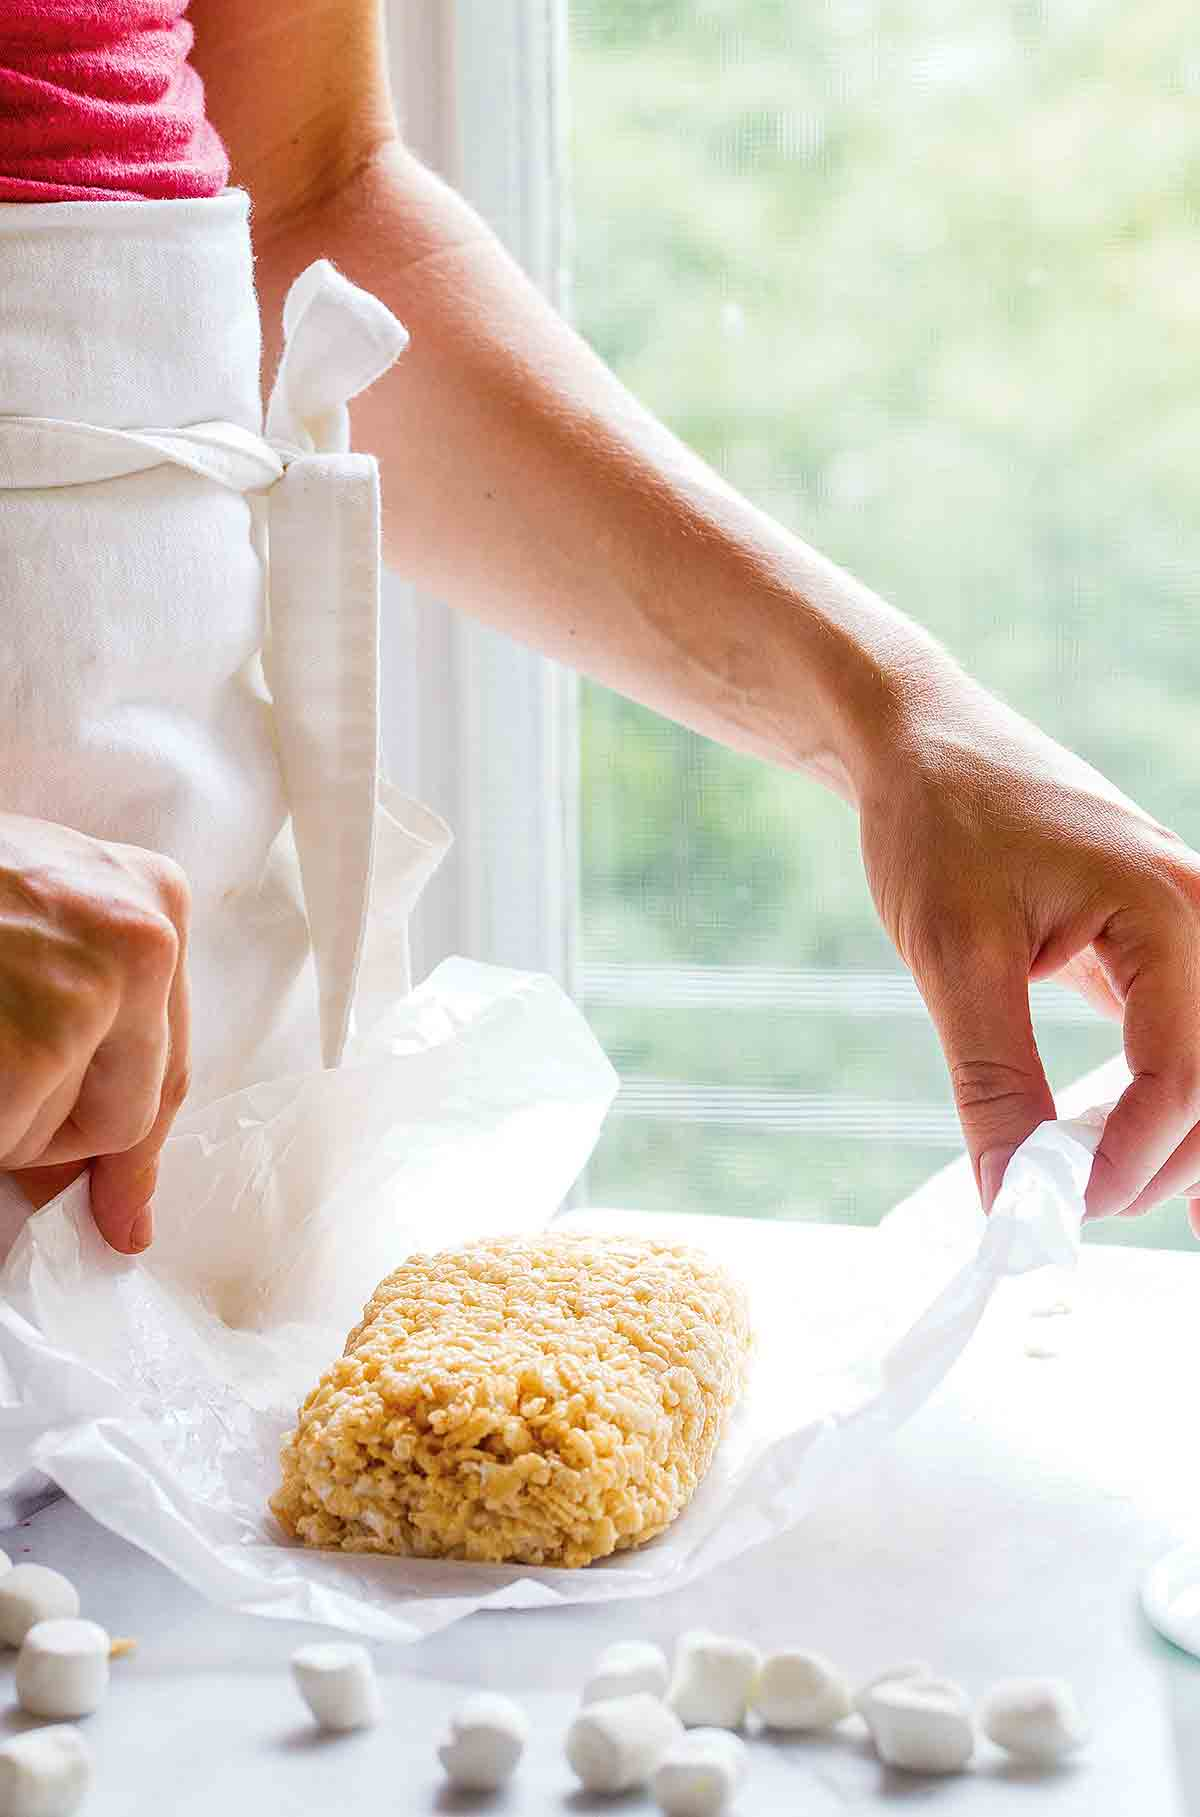 A woman holding a small batch of Rice Krispies treats for two on a piece of wax paper.